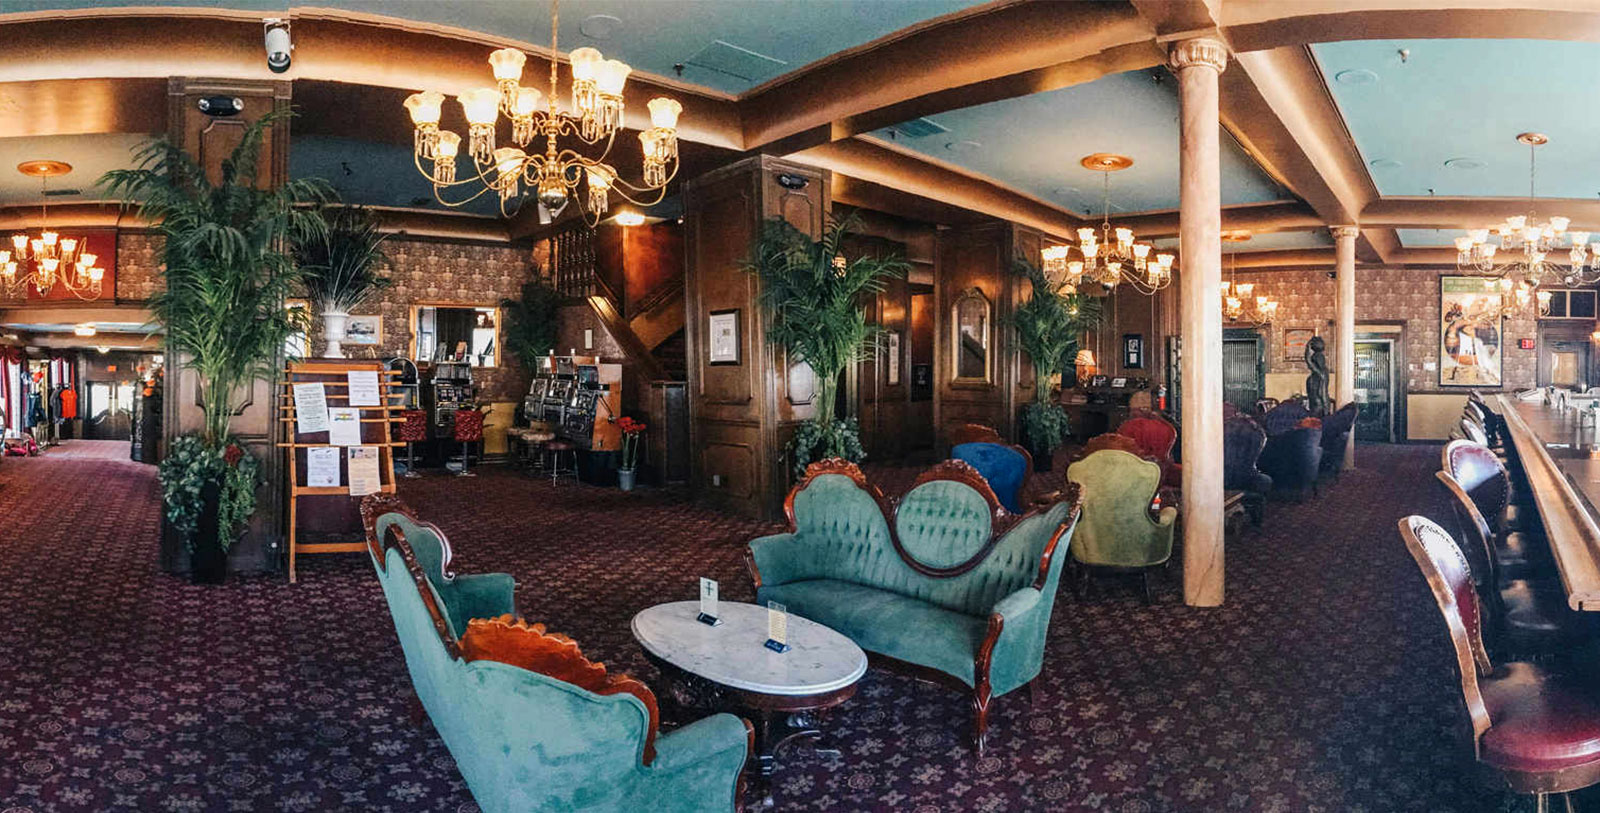 Image of Lobby Seating, Mizpah Hotel in Topah, Nevada, 1907, Member of Historic Hotels of America, Overview